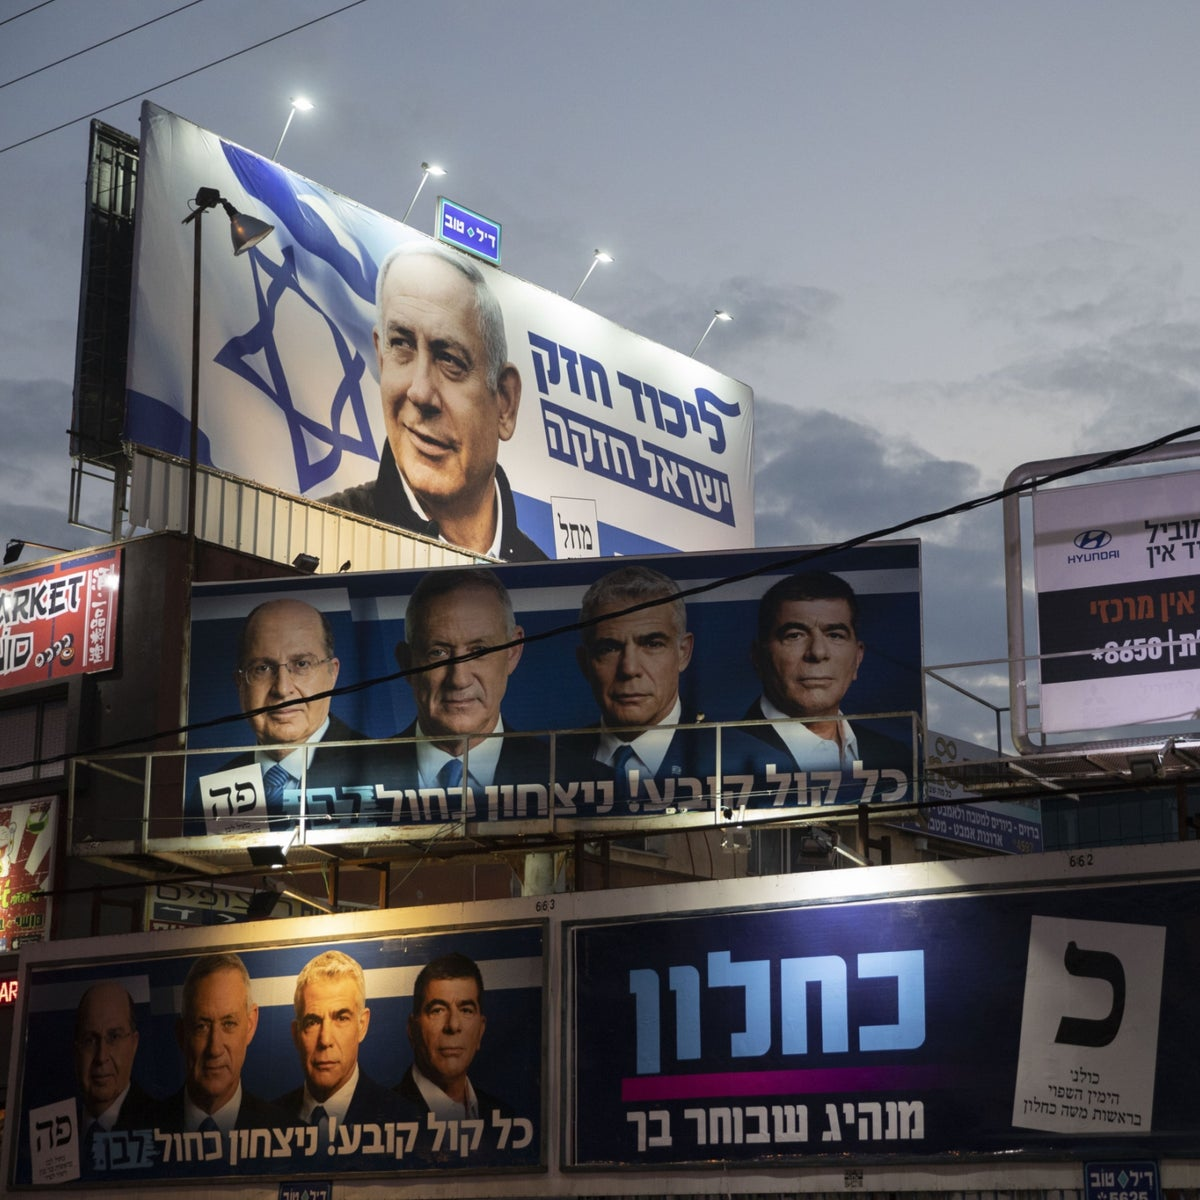 A plethora of advertising billboards in Tel Aviv for Likud, Kahol Lavan and Kulanu, April 1, 2019.